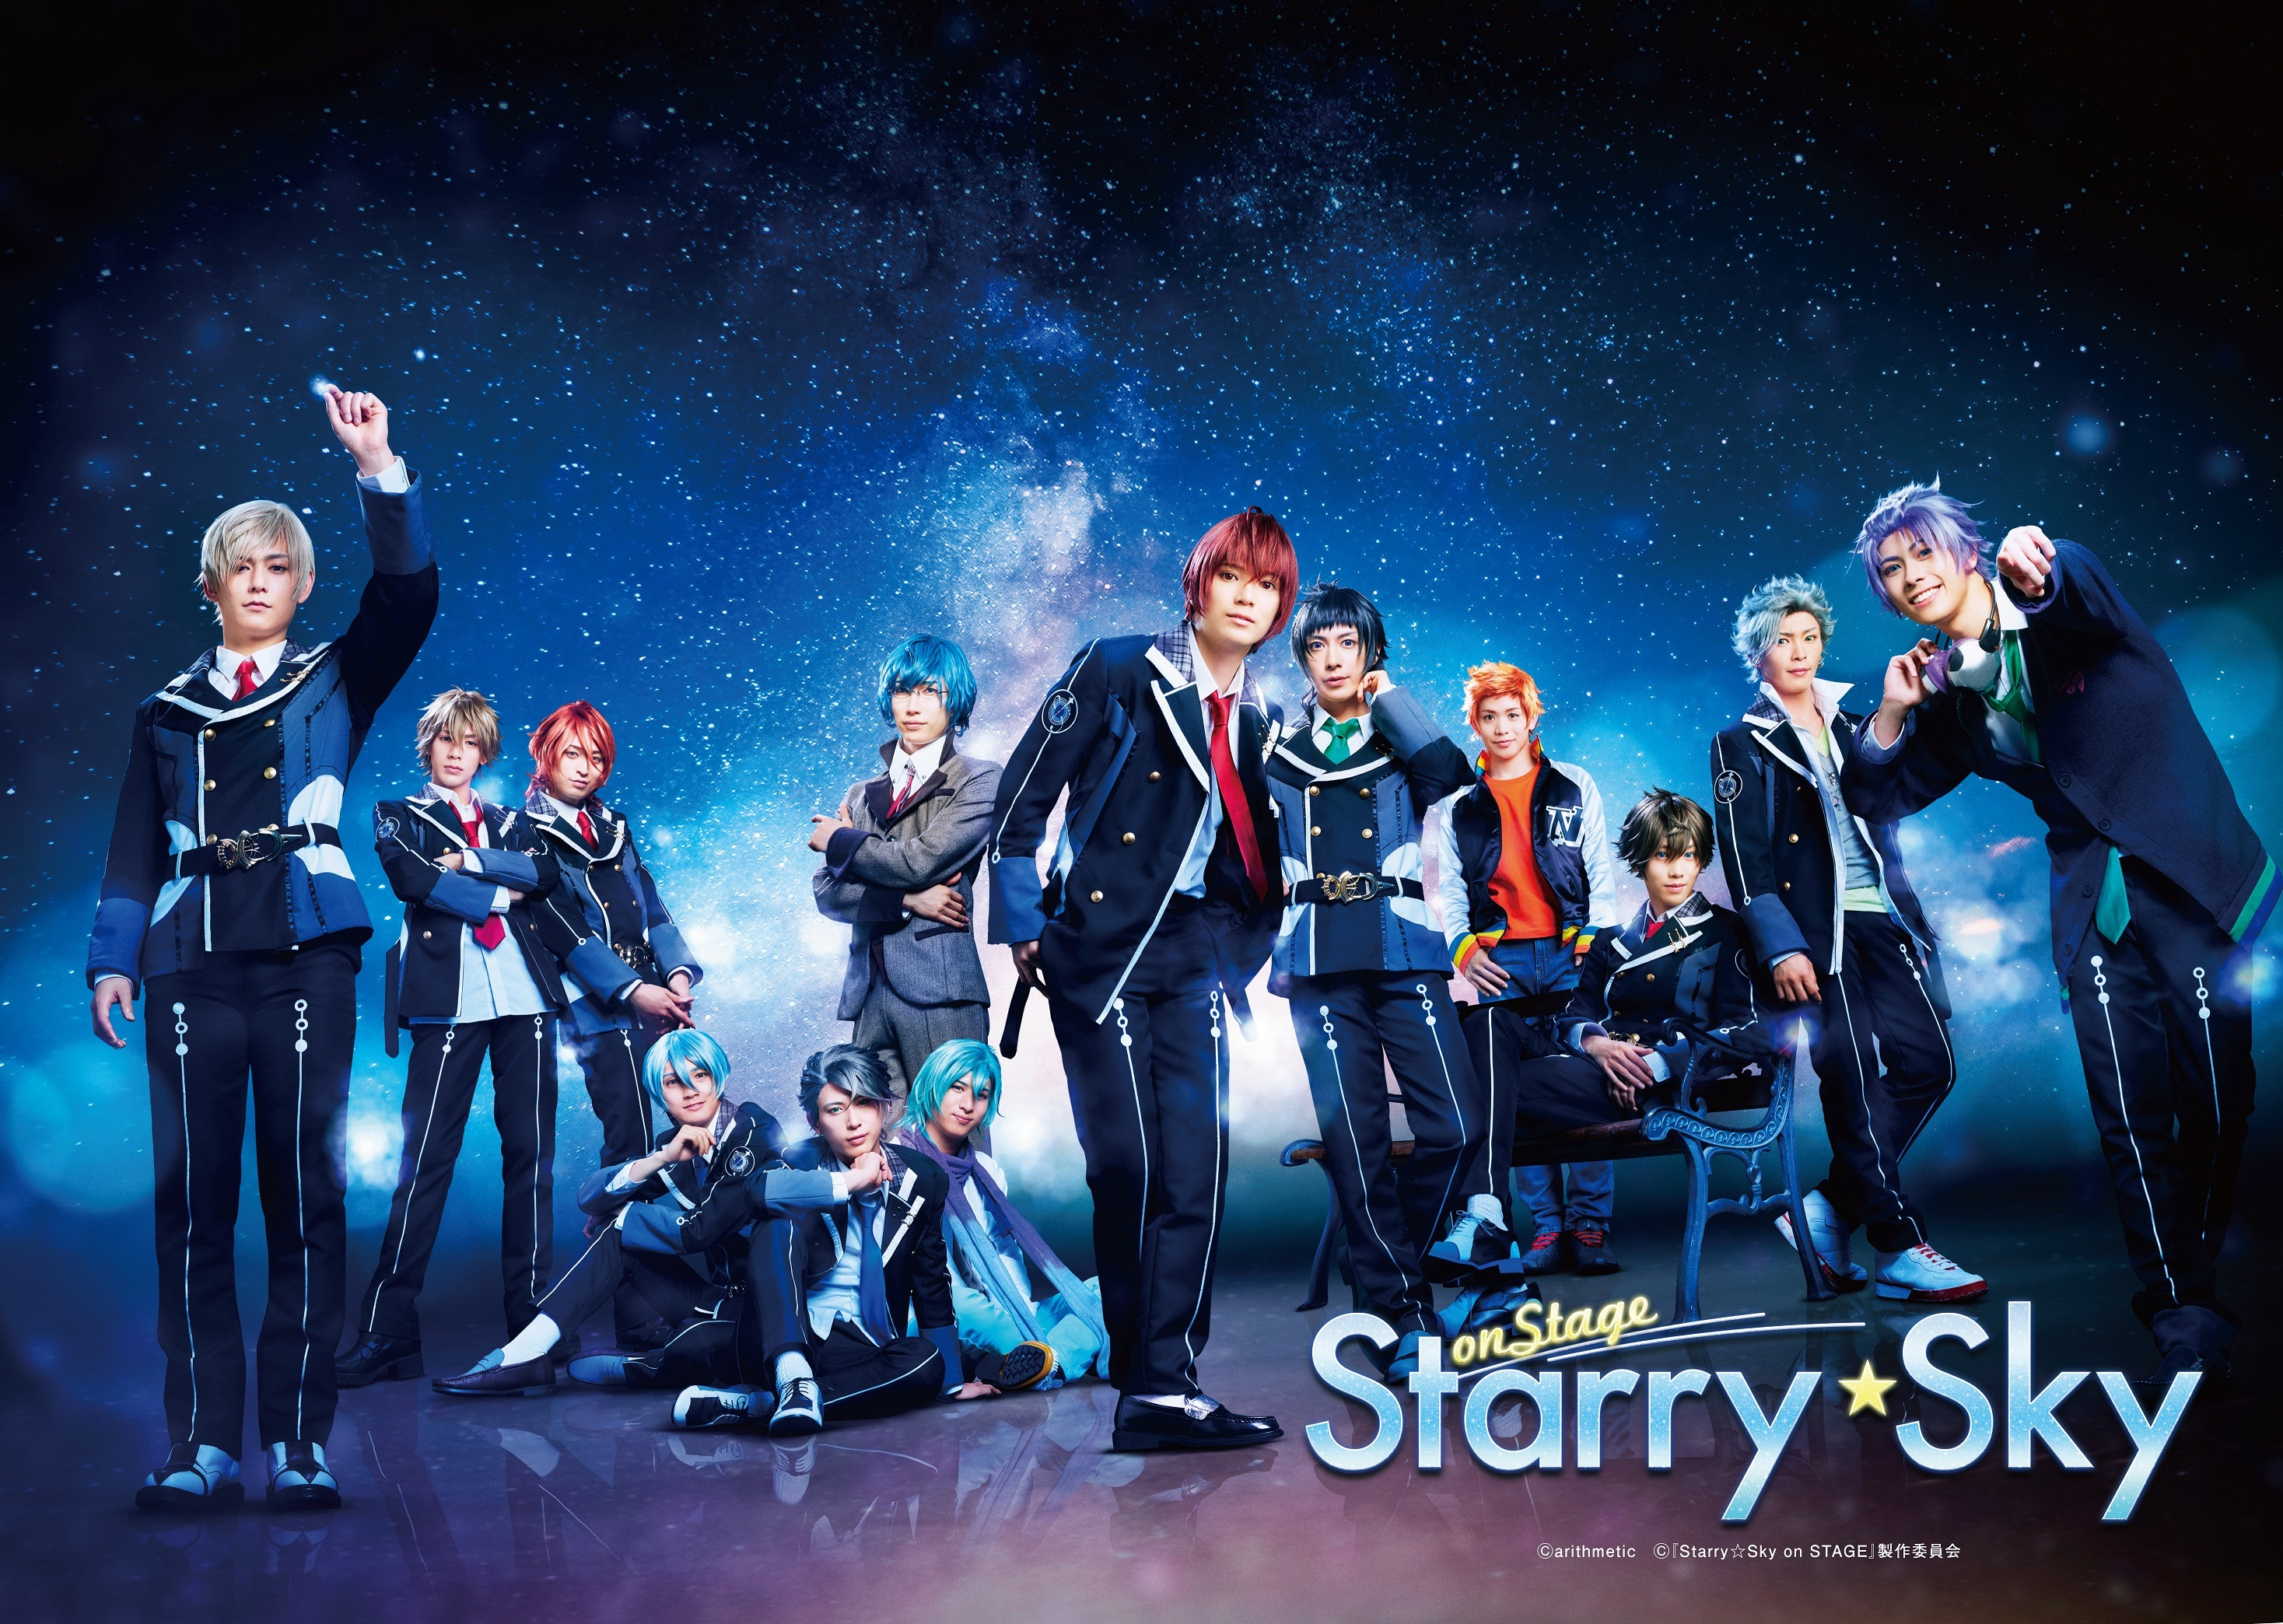 Ⓒarithmetic / Ⓒ『Starry☆Sky on STAGE』製作委員会